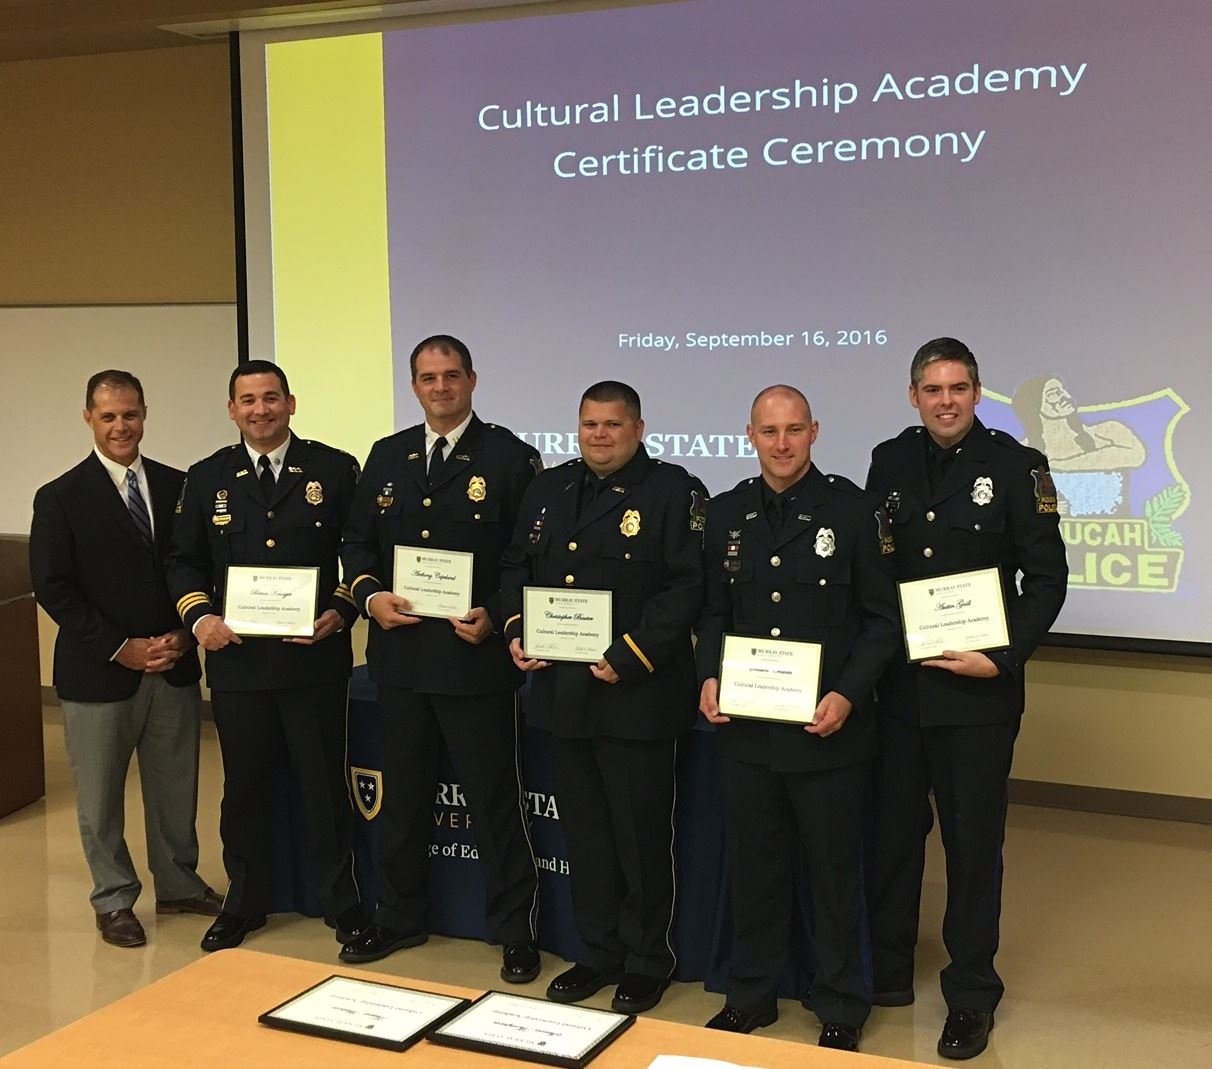 Chief Brandon Barnhill, Assistant Chief Brian Krueger, Capt. Anthony Copeland, Sgt. Chris Baxter, Officer Shawn Craven and Officer Austin Guill